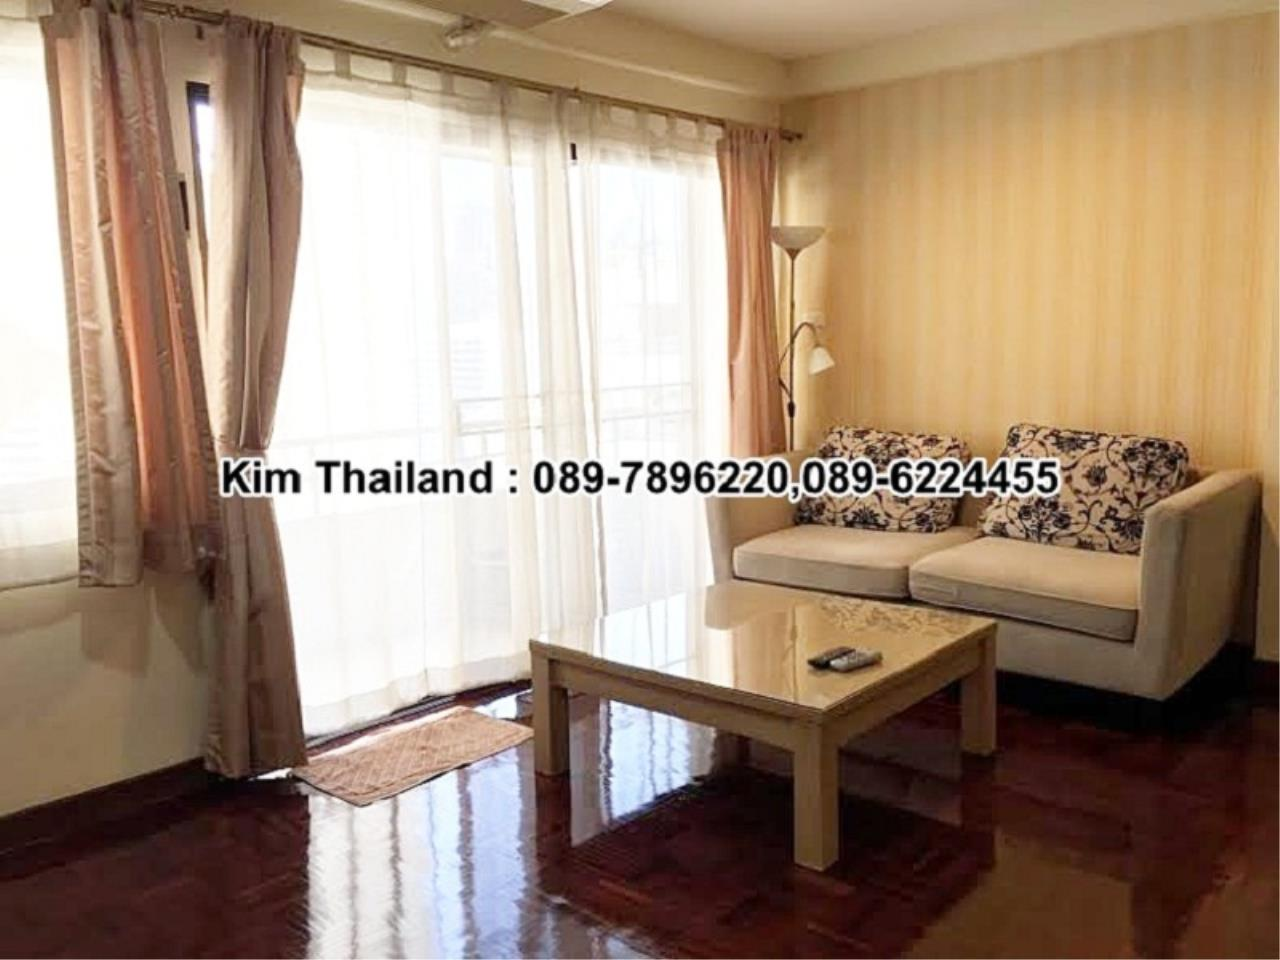 BKKcondorental Agency's For rent, Condo Saranjai Mansion. Area 63 sq.m. 1 bedroom. Rent 20,000baht/month 9